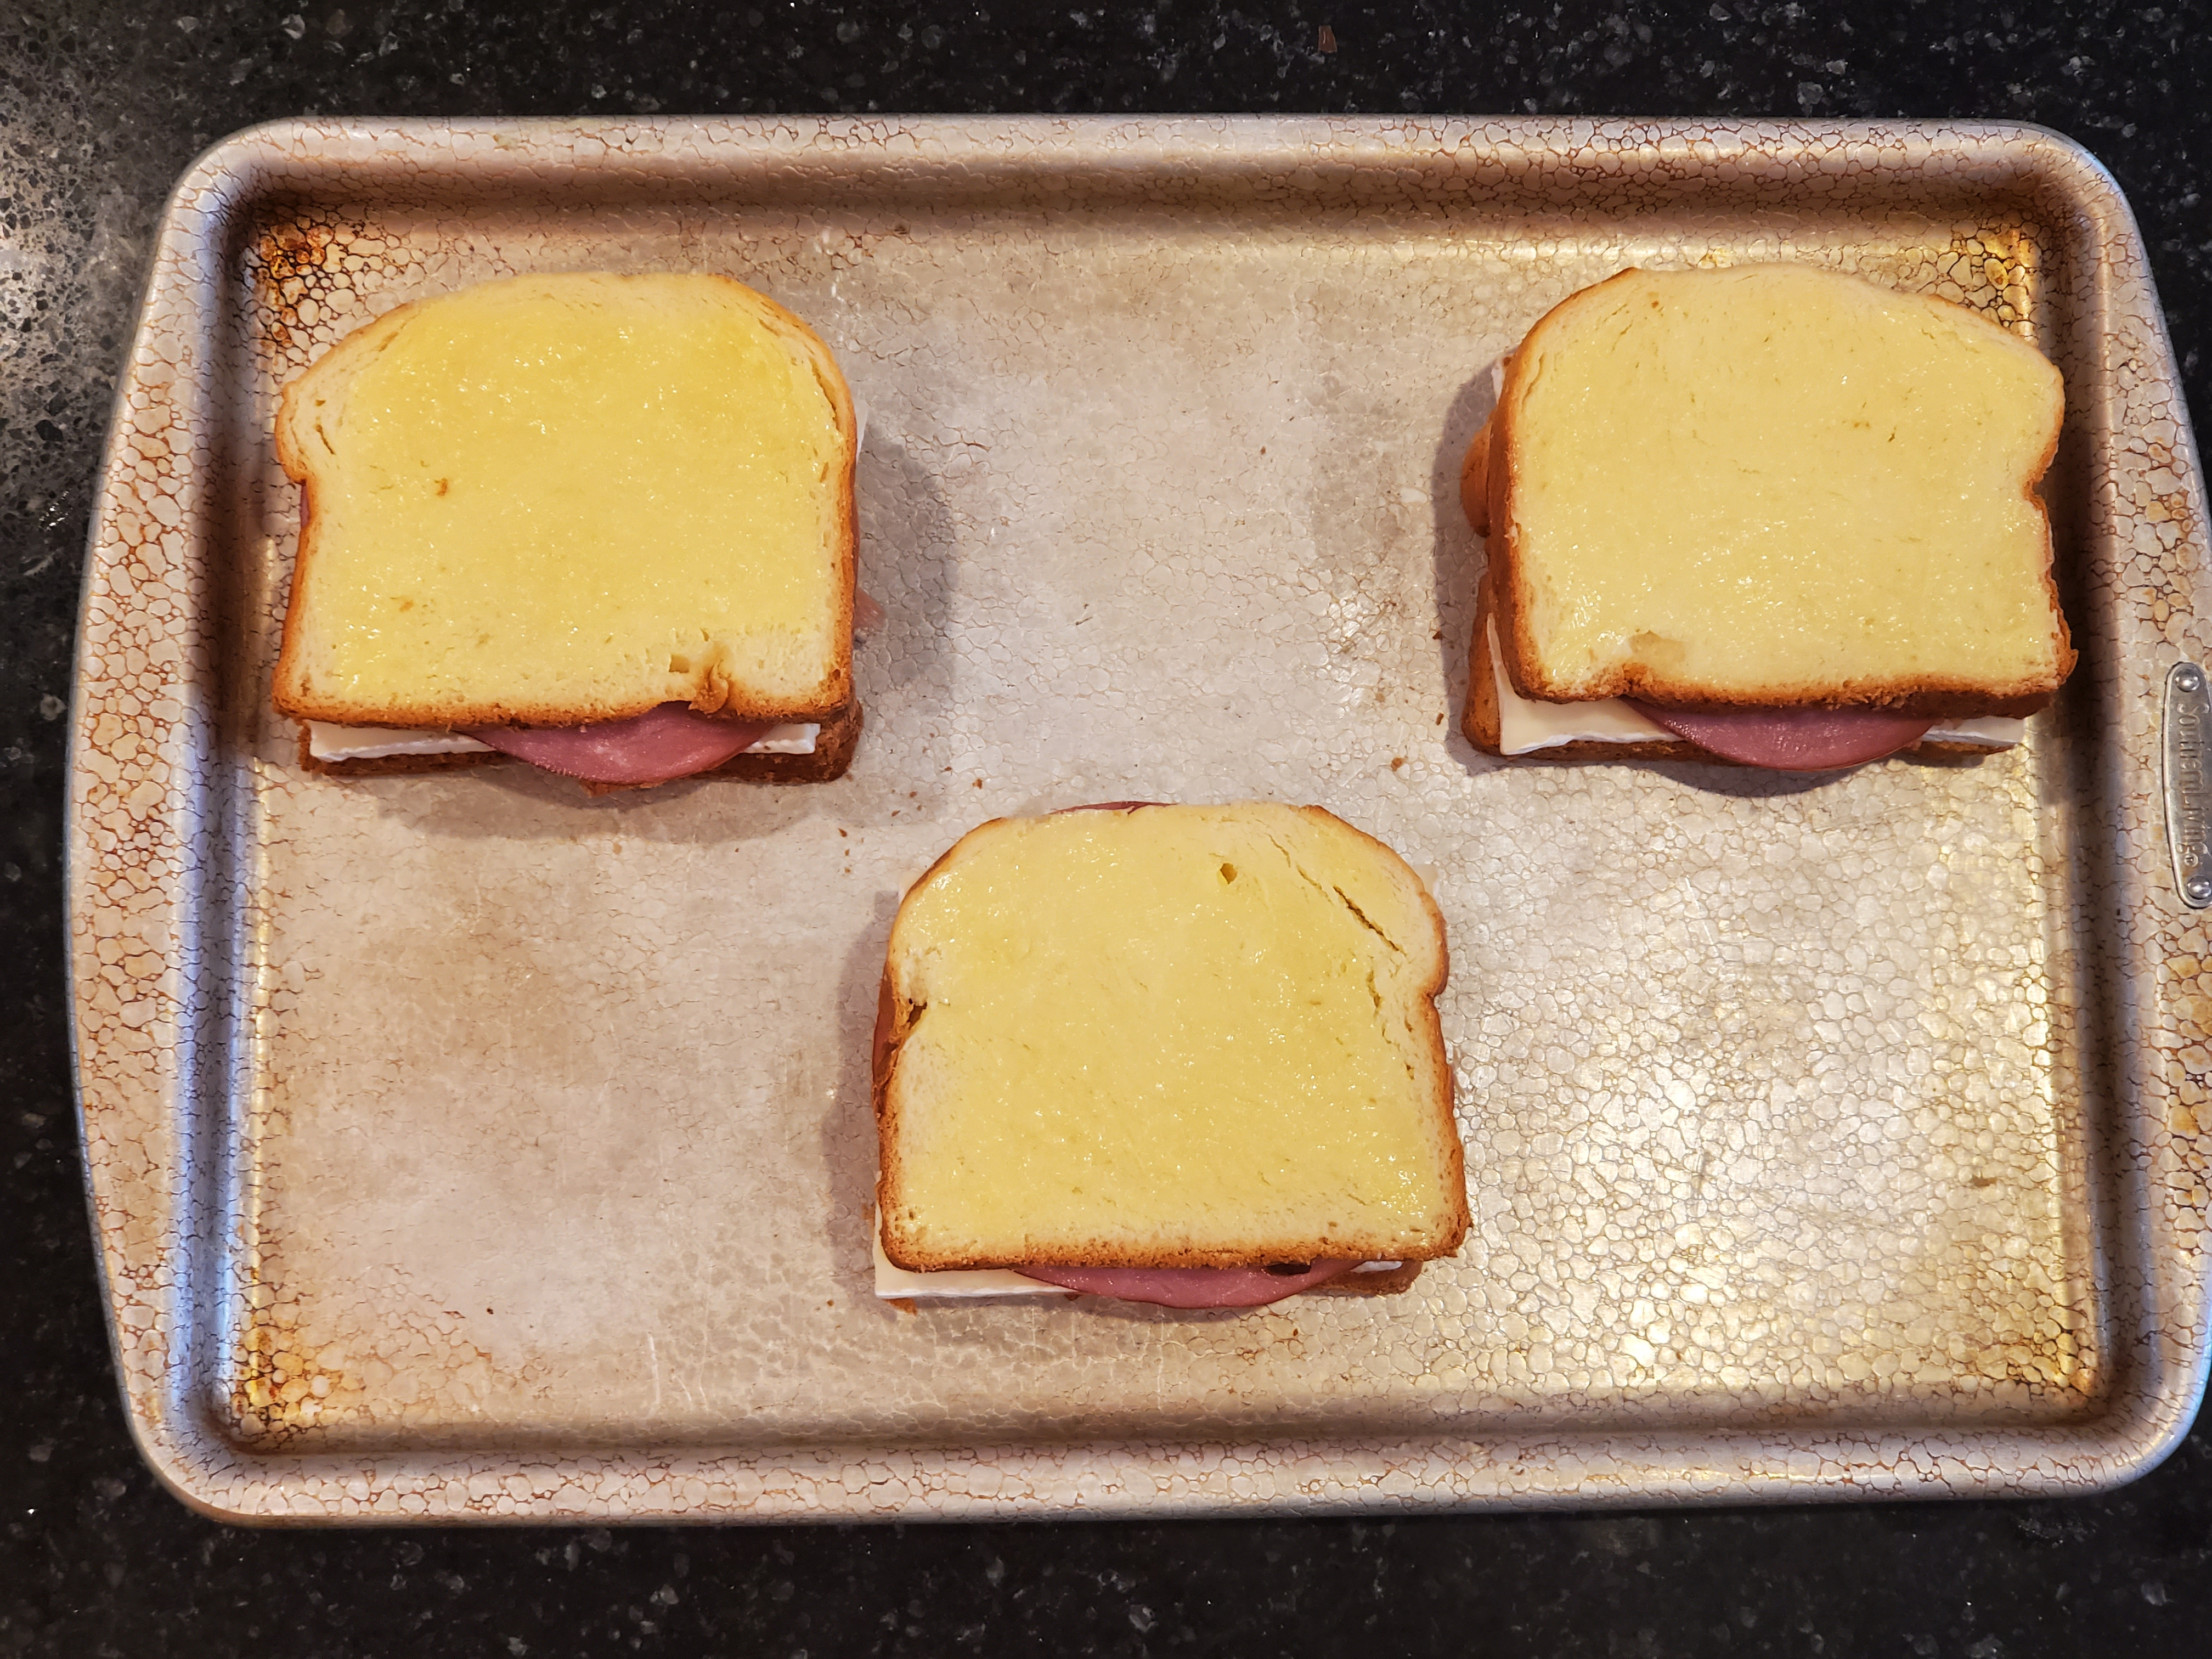 The three sandwiches are now assembled on top of the baking sheet, butter side up, ready to go in the oven.